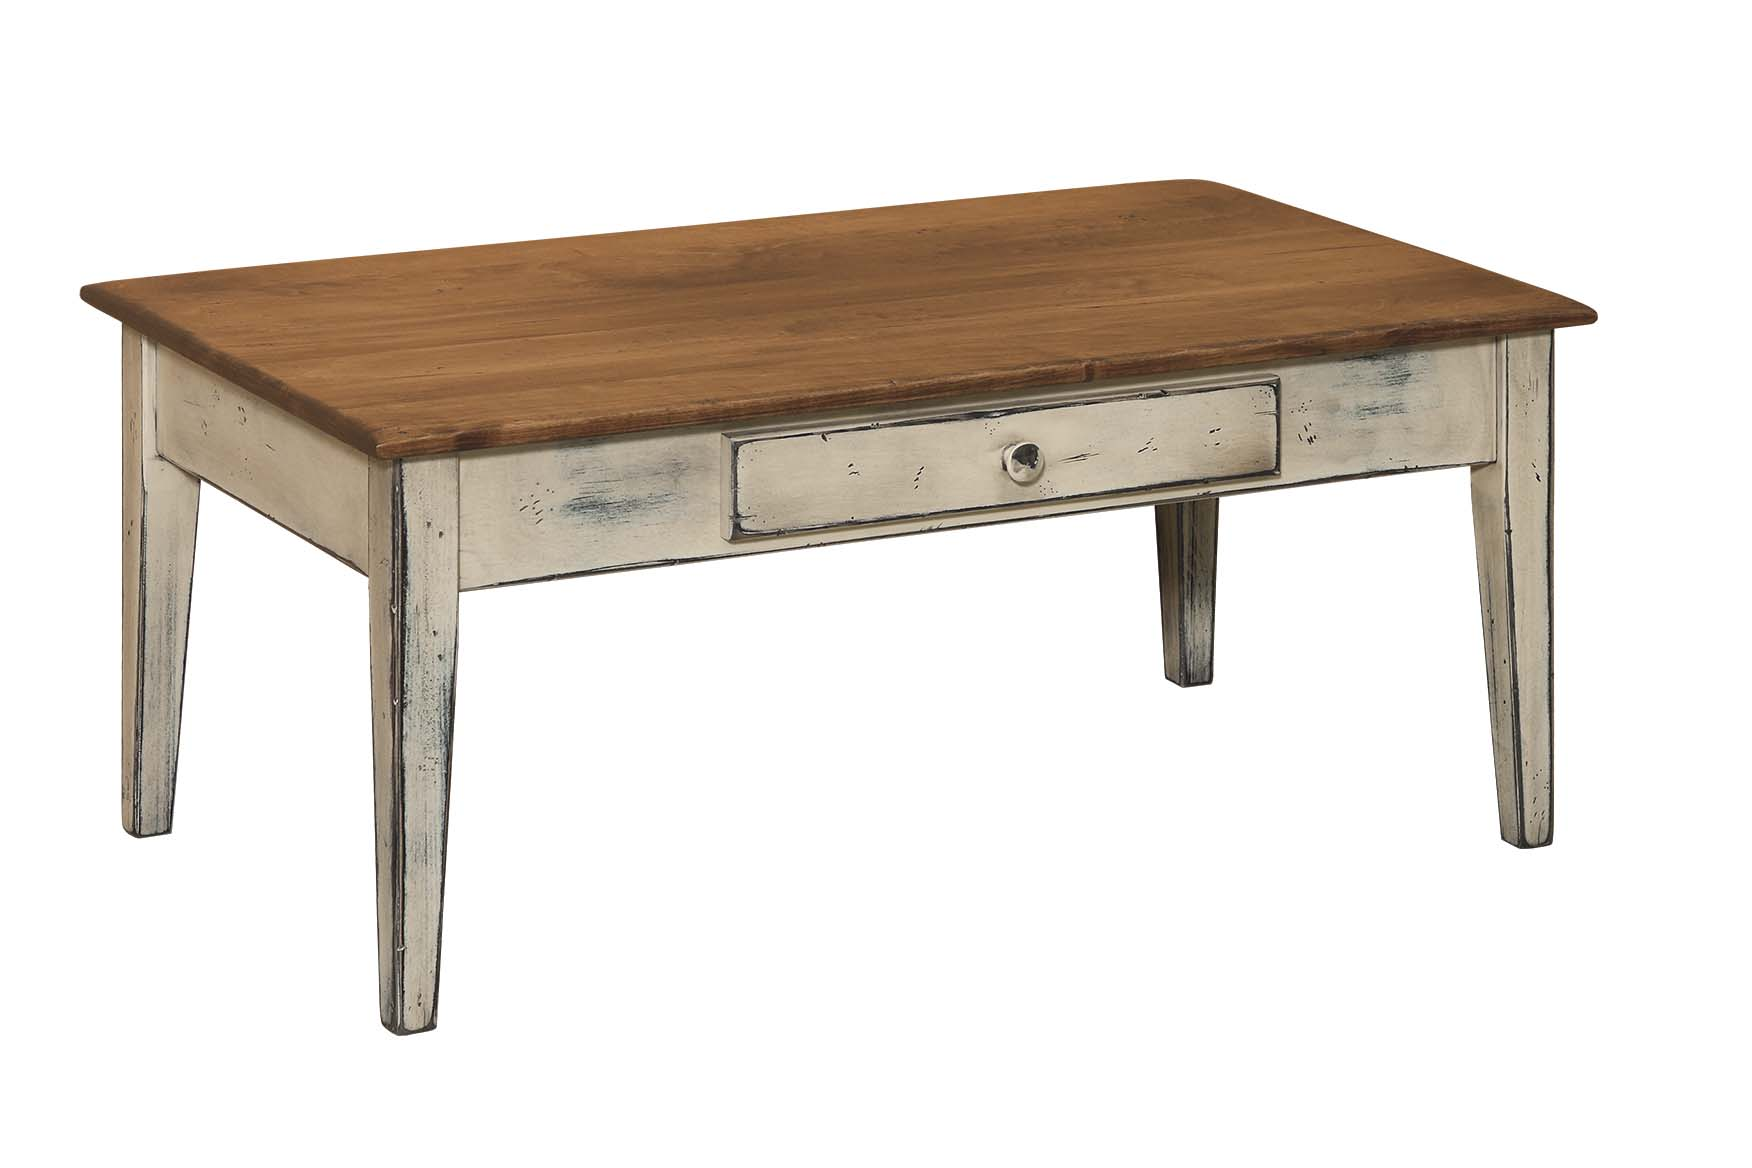 Shaker Coffee Table Amish Furniture Connections Amish Furniture Connections